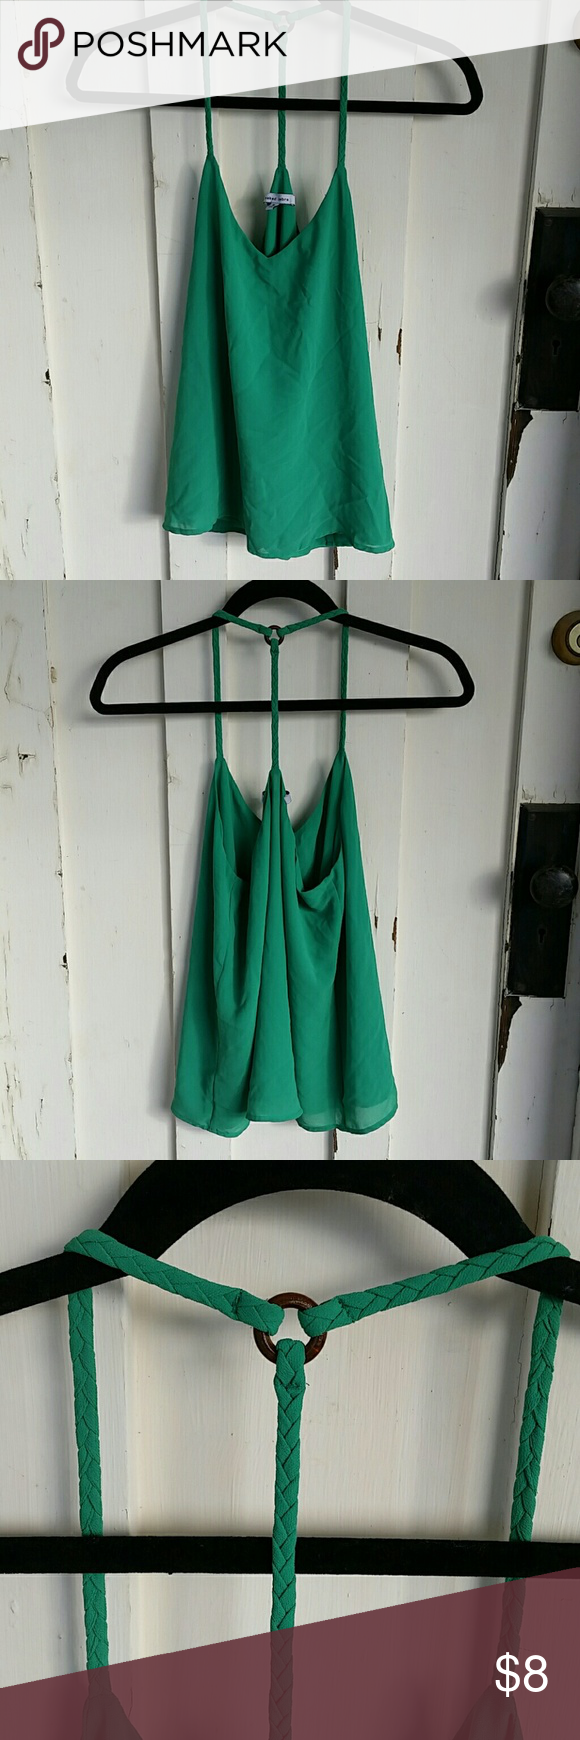 Green Tank Top Bright Green colored tank, braided straps with a wooden accent Made of polyester Zebra Tops Tank Tops